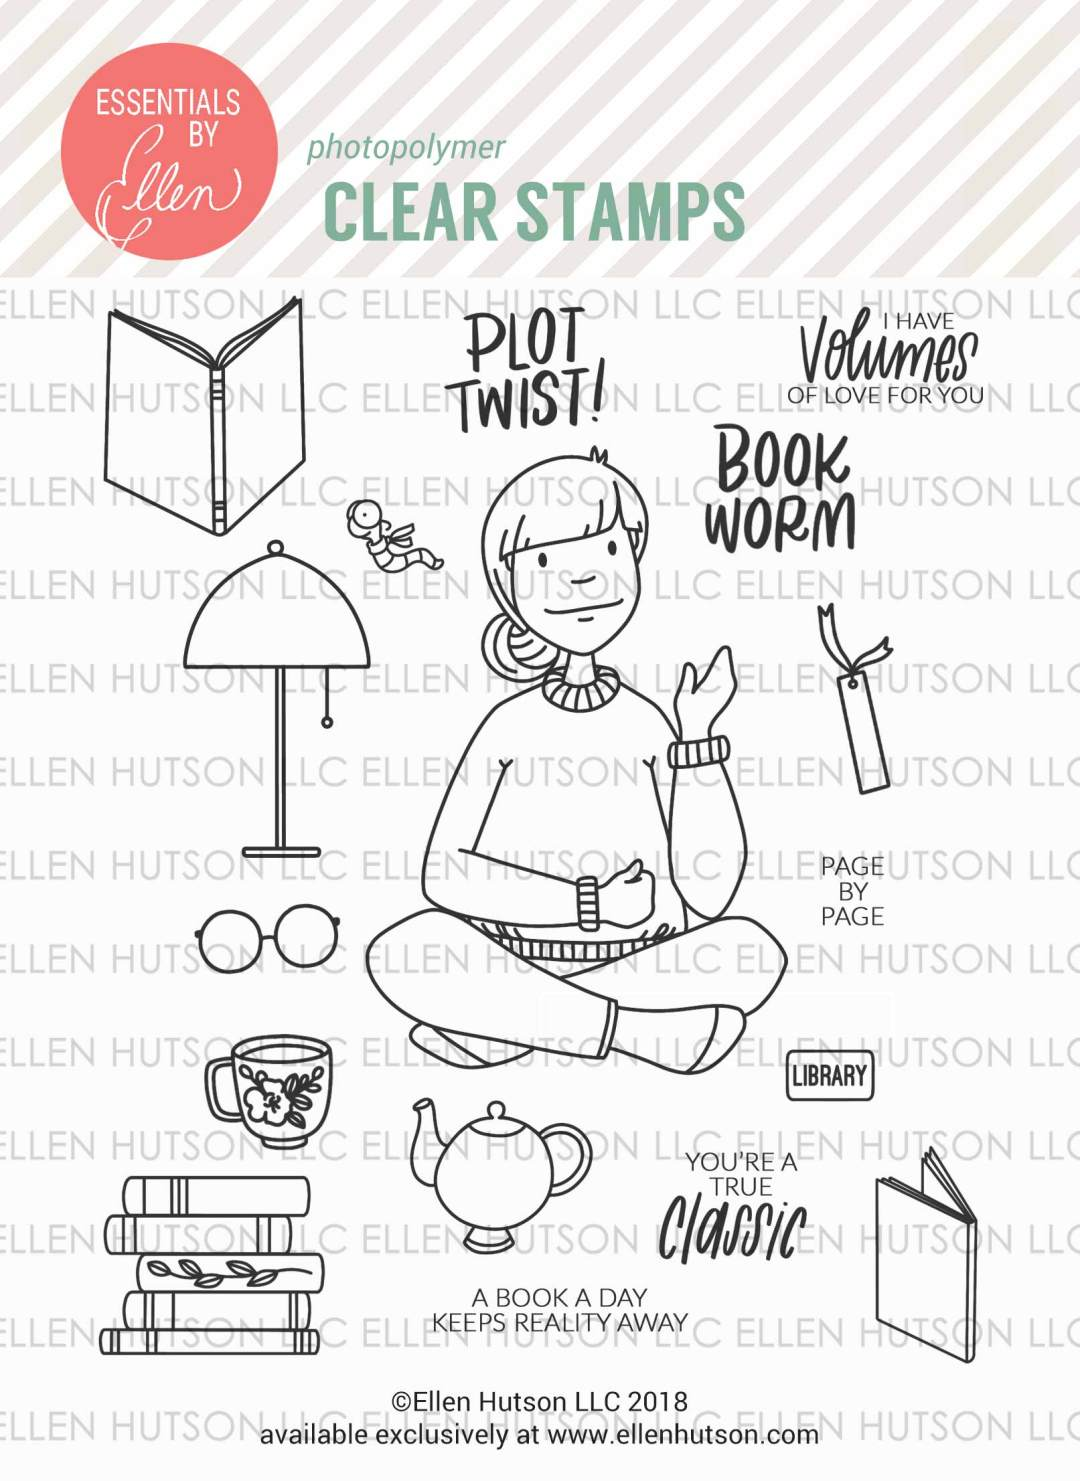 Essentials by Ellen Bookworm Lady stamps